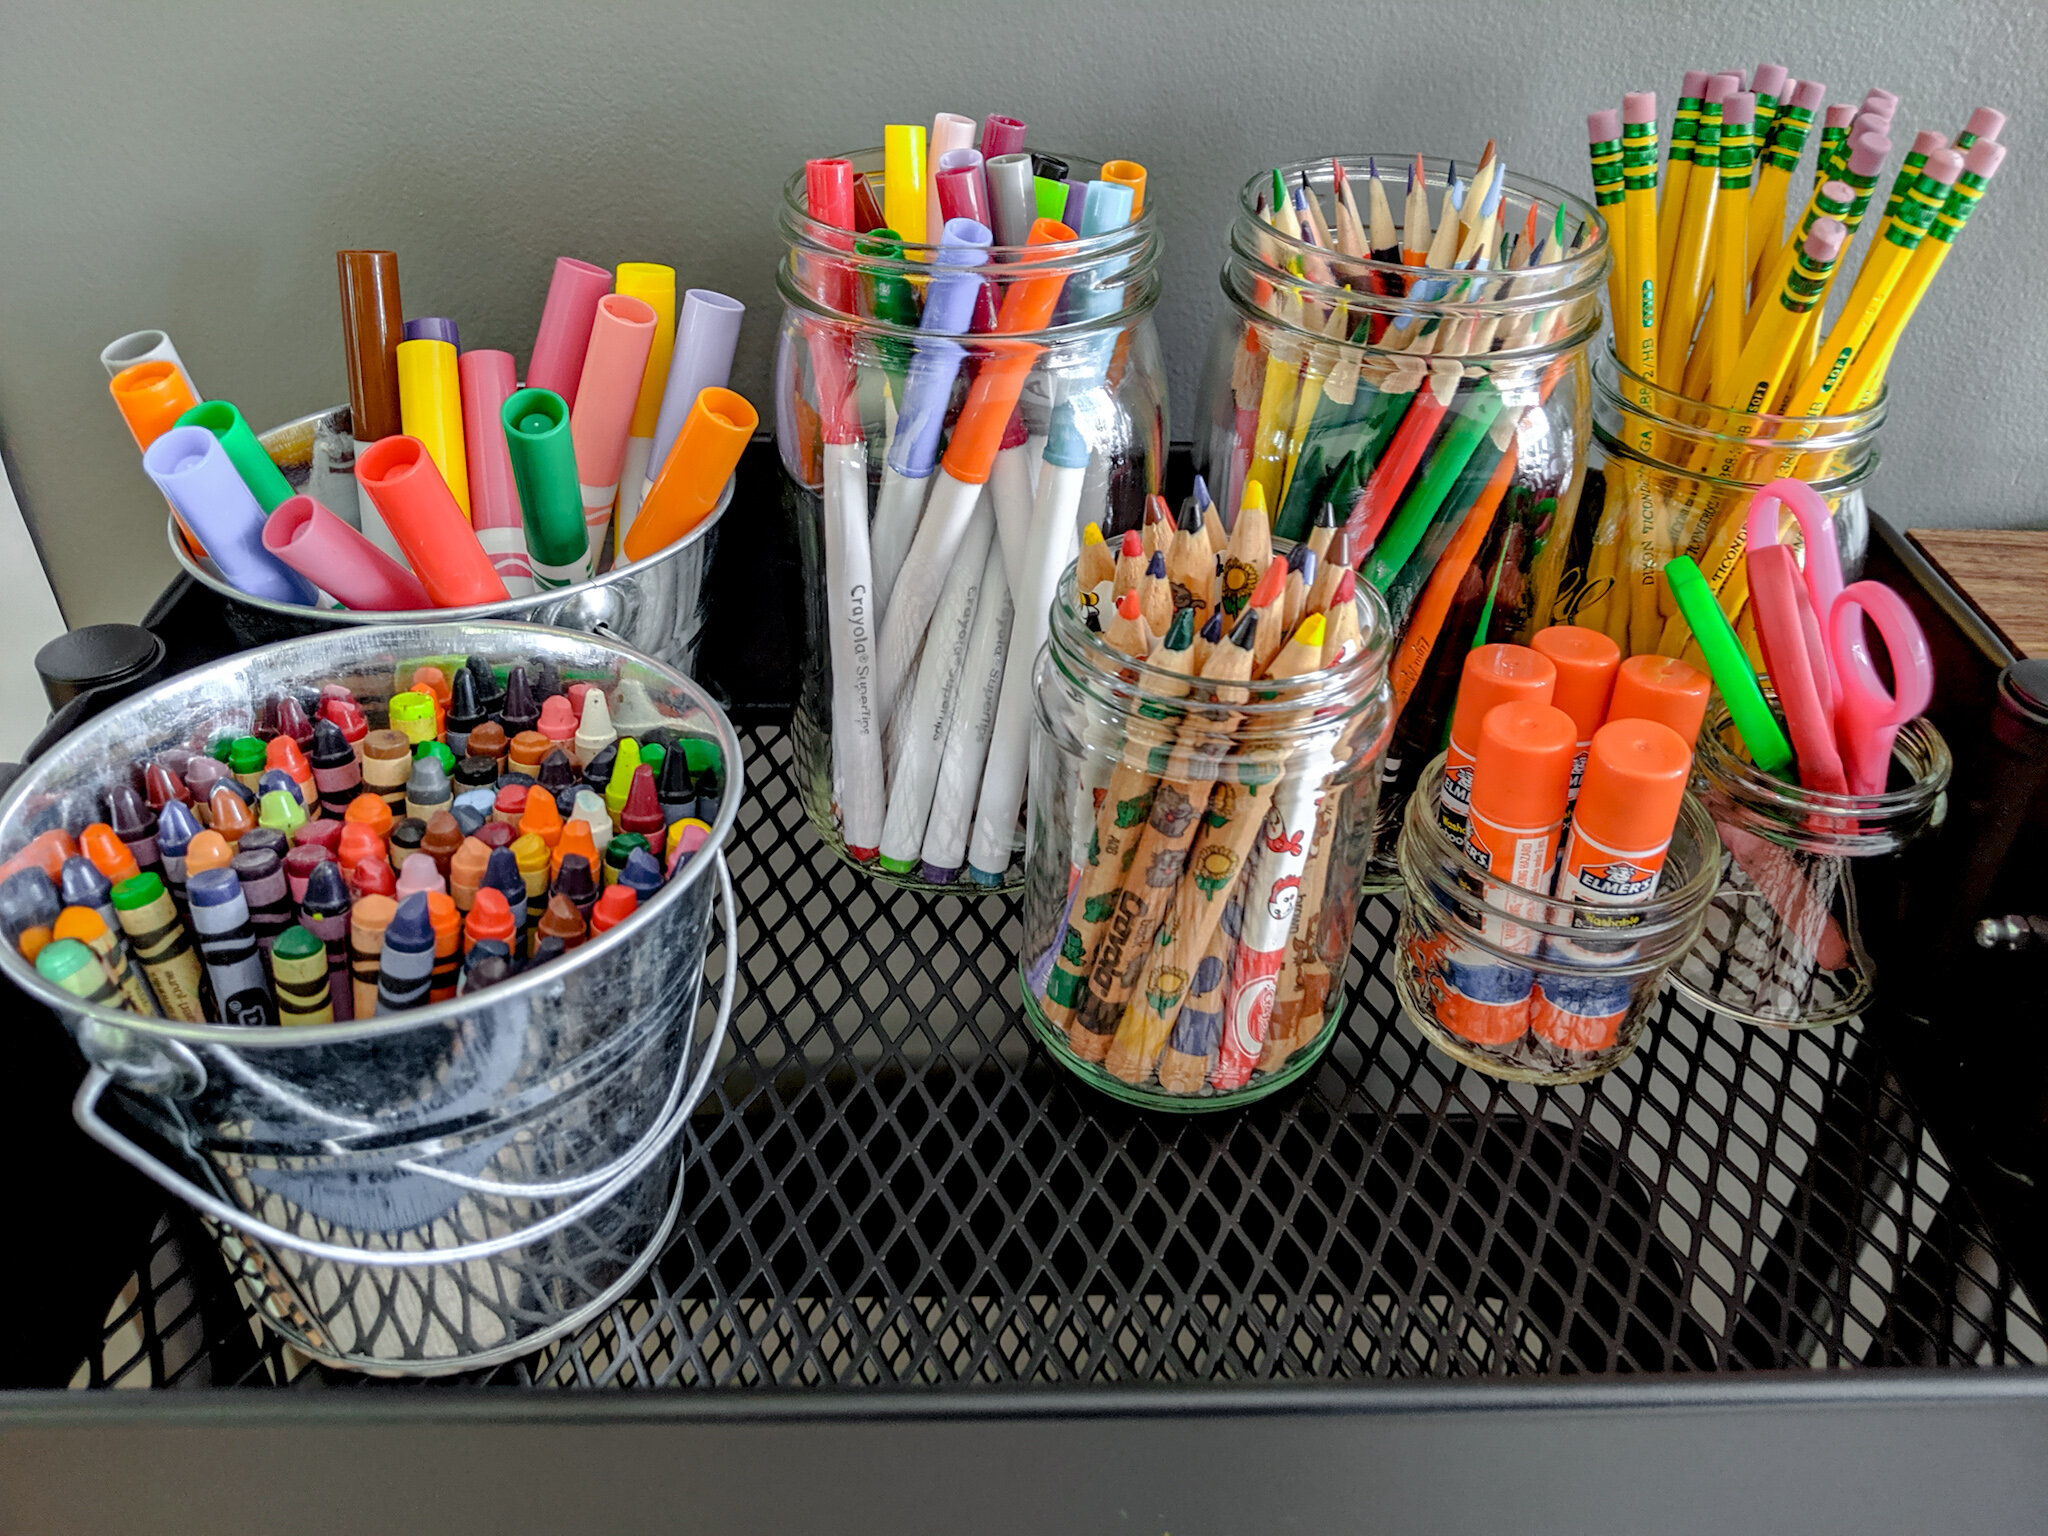 Using just what we had on hand, this cart is full of everything you could possibly need to do your homework!